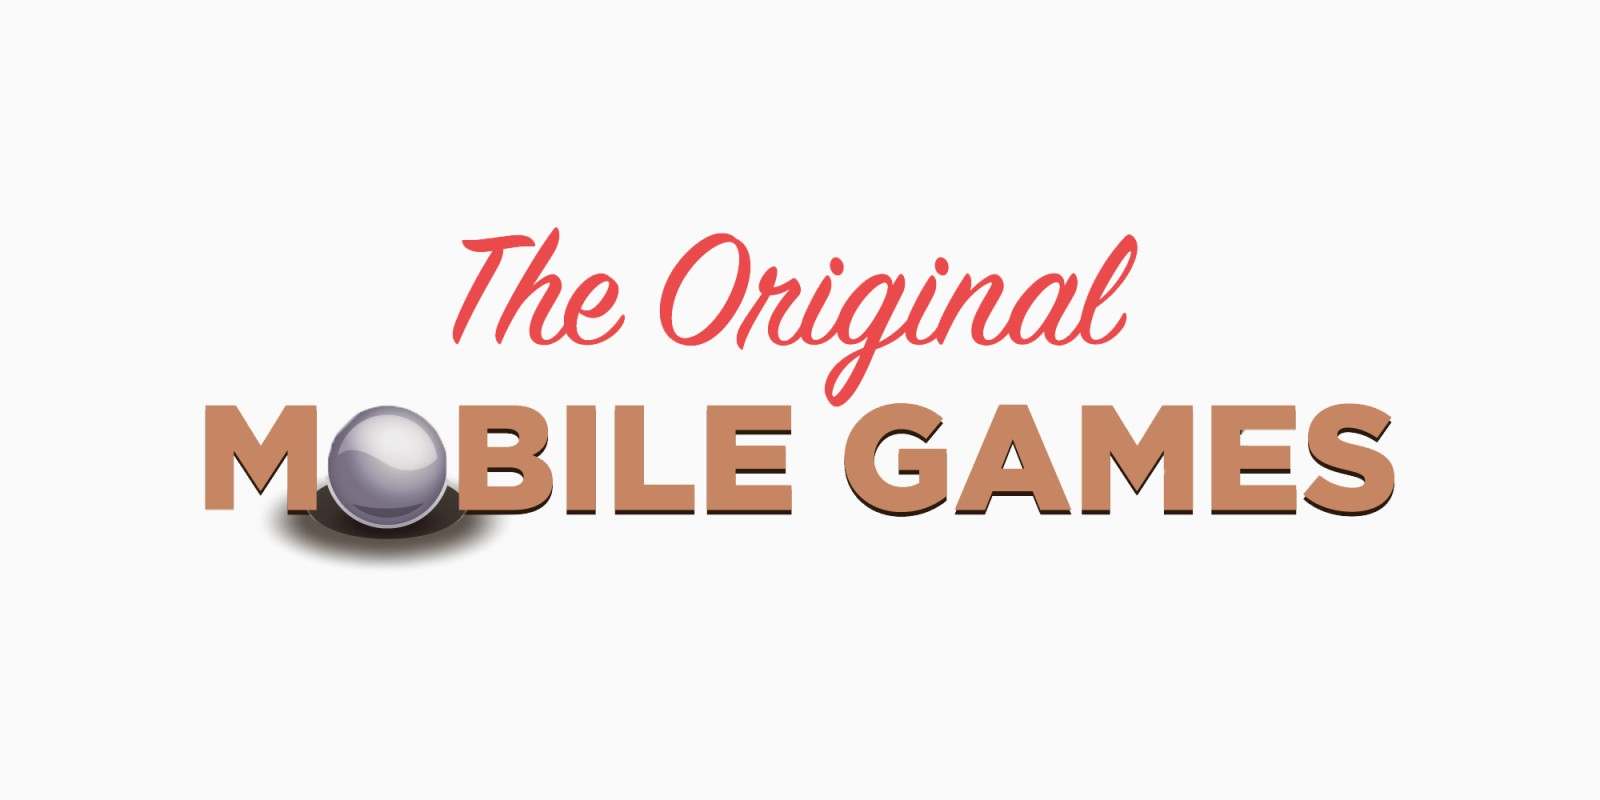 The Original Mobile Games